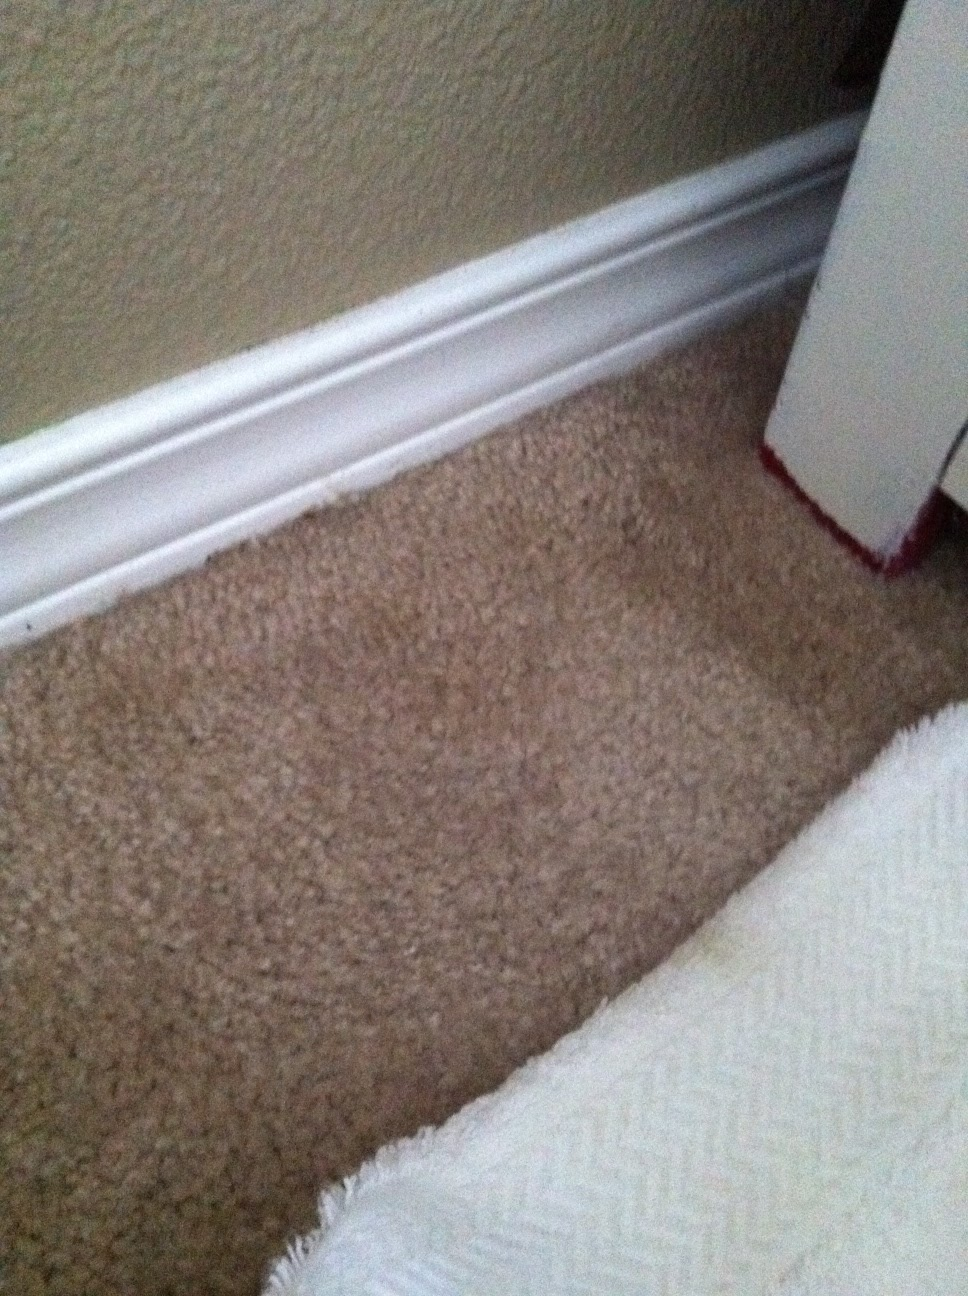 Freckle face girl tips for living carpet cleaning - Tips about carpet cleaning ...